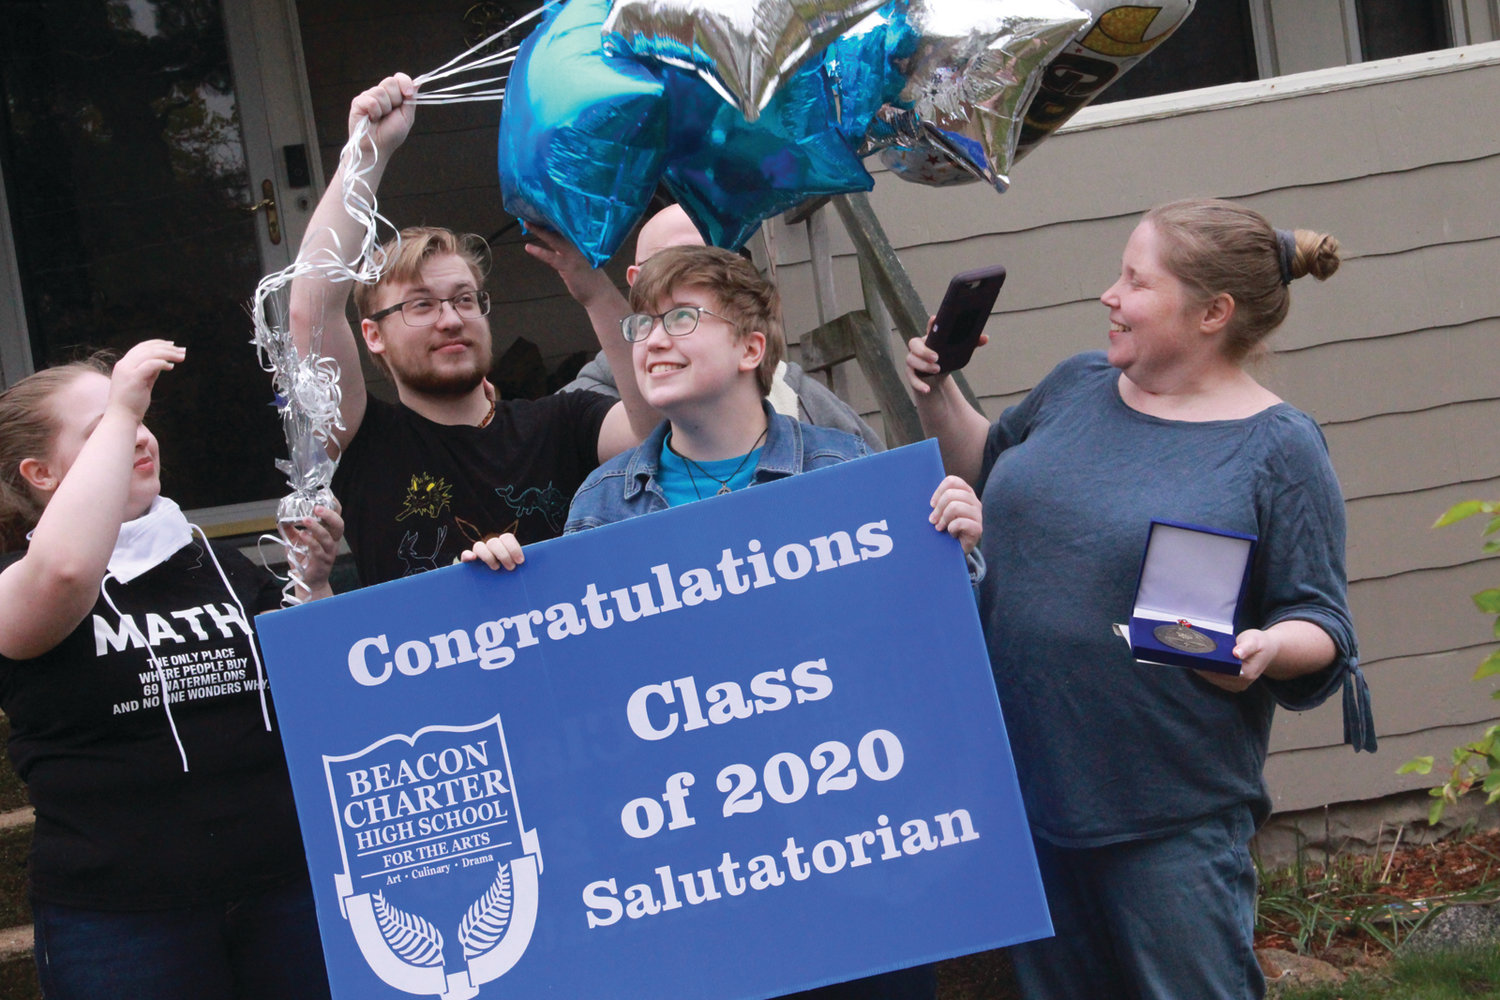 BLOWN OVER: Bethany Crawford is joined by her family outside their Warwick home where she learned she is the Class of 2020 Salutation at Beacon Charter School for the Arts and Founders Academy in Woonsocket.